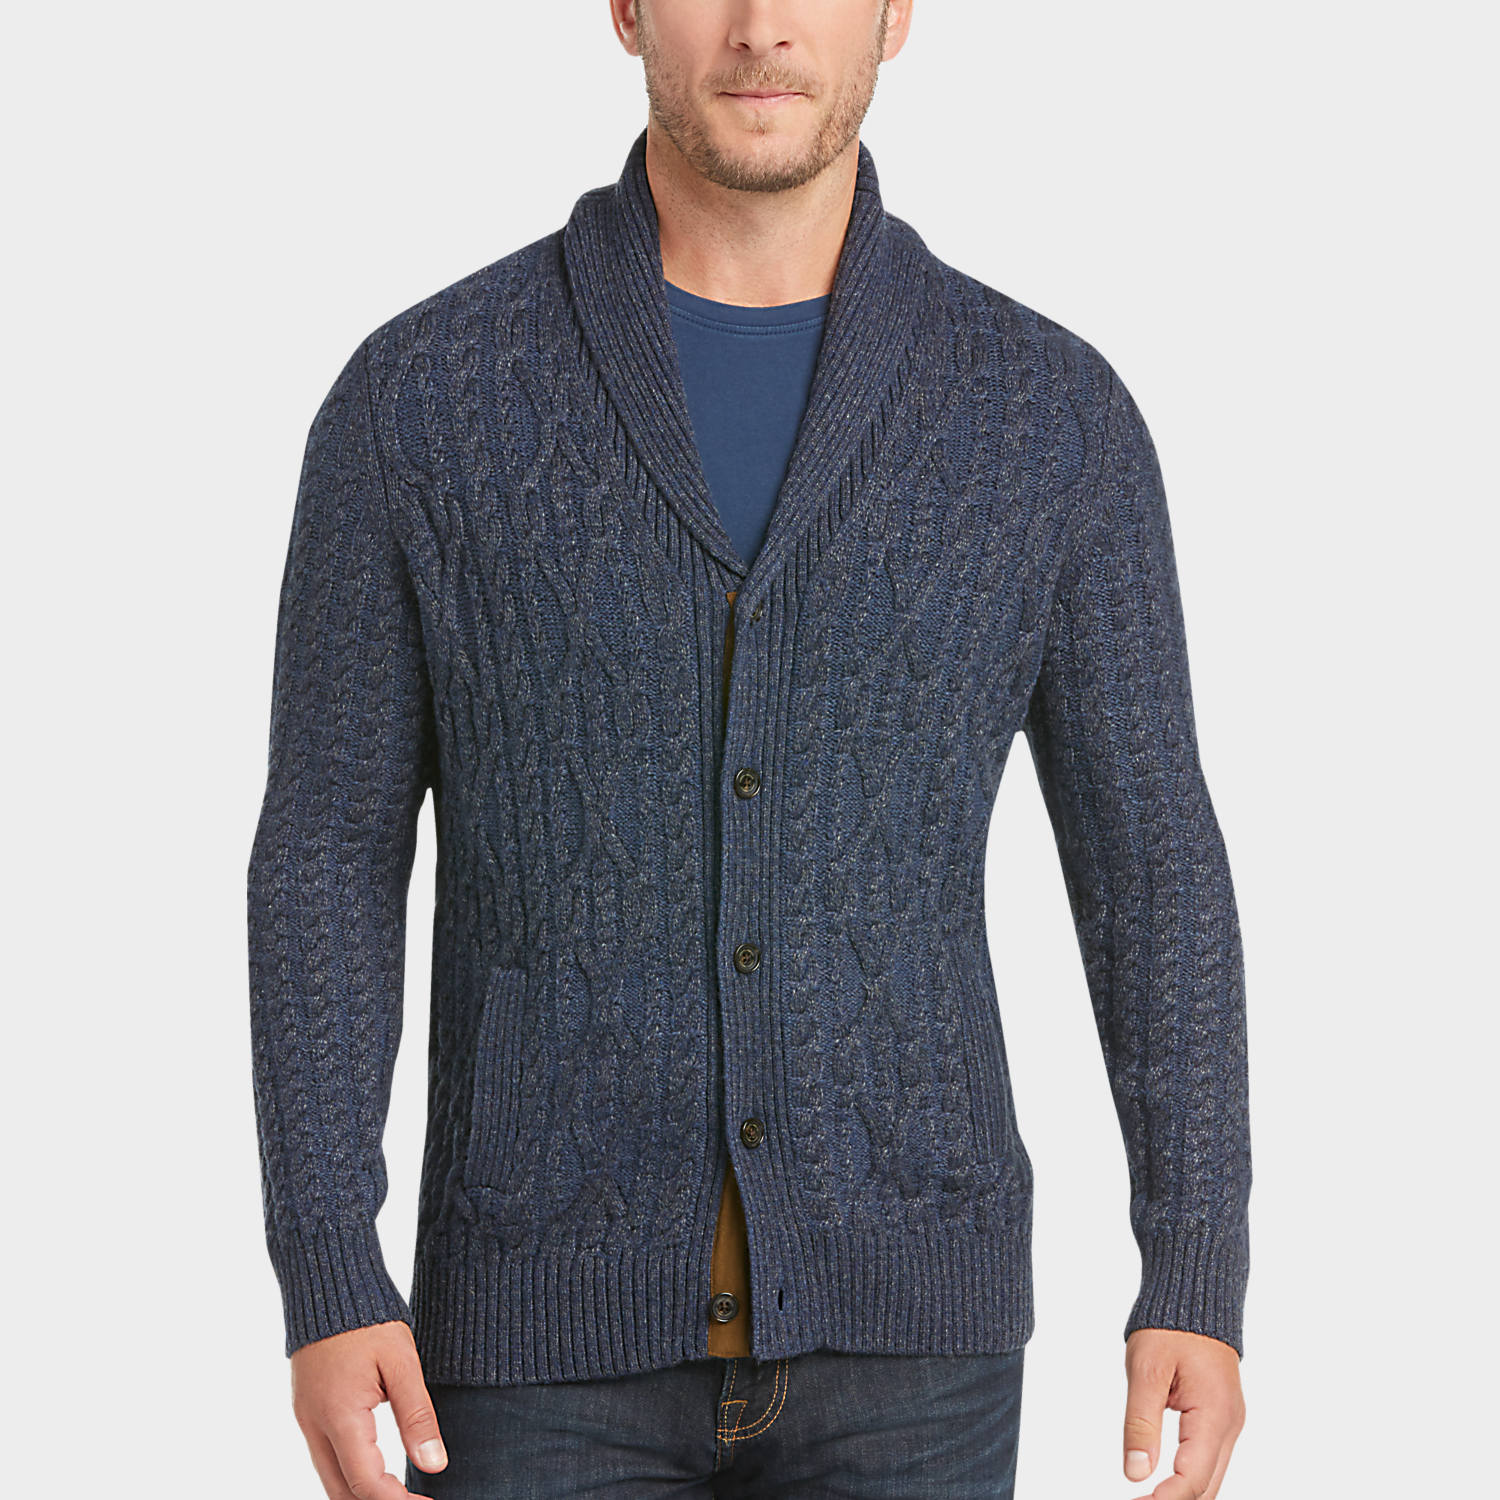 Are you looking for mens cardigans and sweaters cheap casual style online? techclux.gq offers the latest high quality cardigans and sweaters for men at great prices. Free shipping world wide.